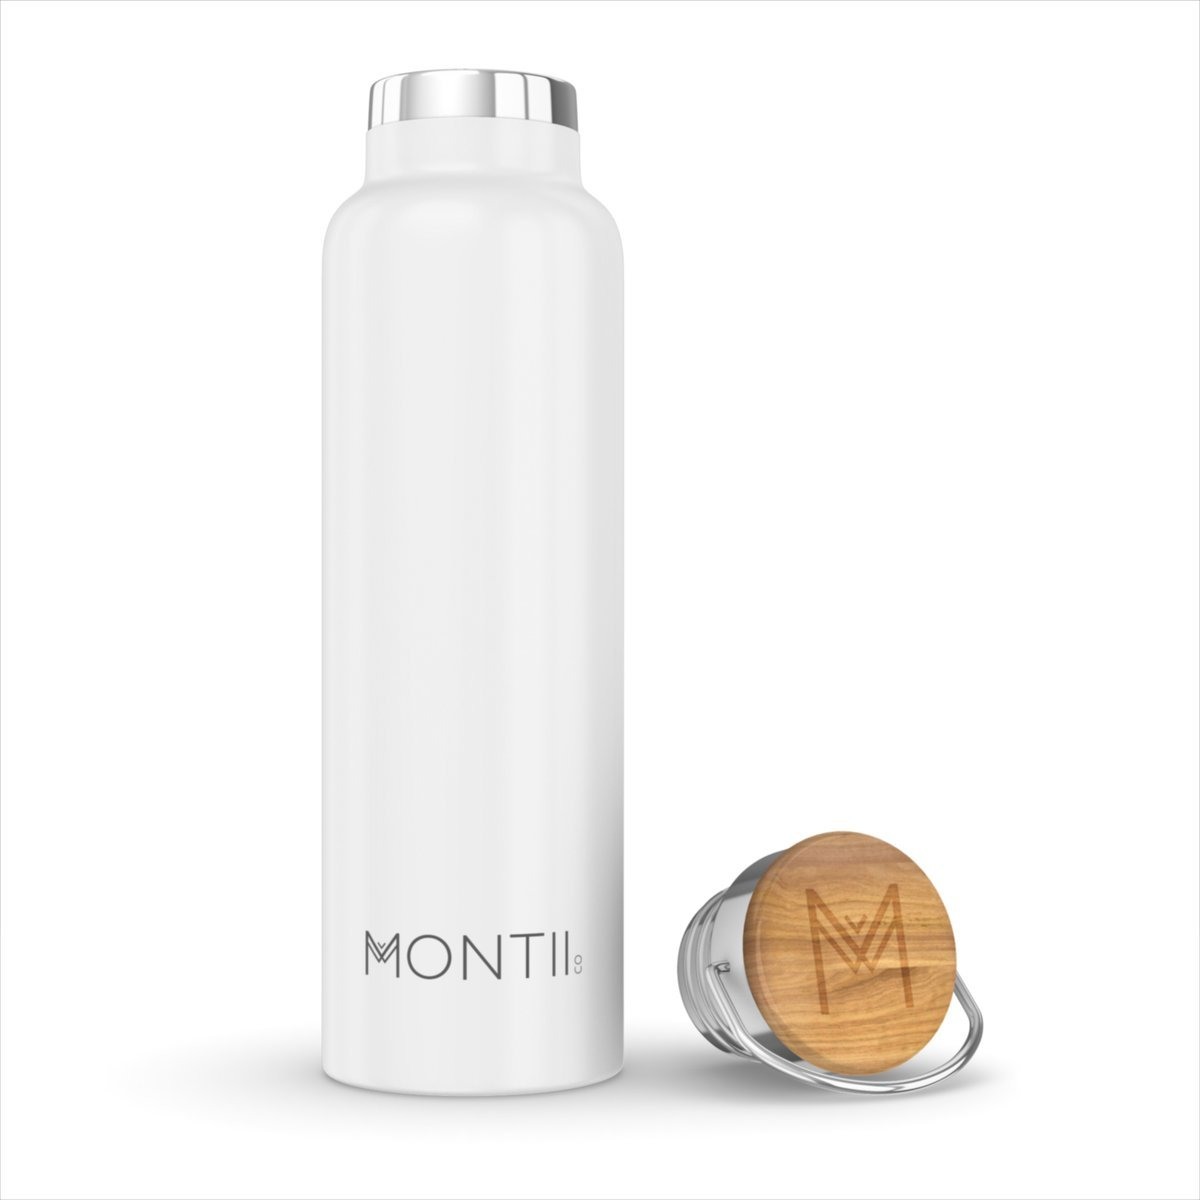 Montii Co Insulated Bottle 600ml Montii Water Bottles White at Little Earth Nest Eco Shop